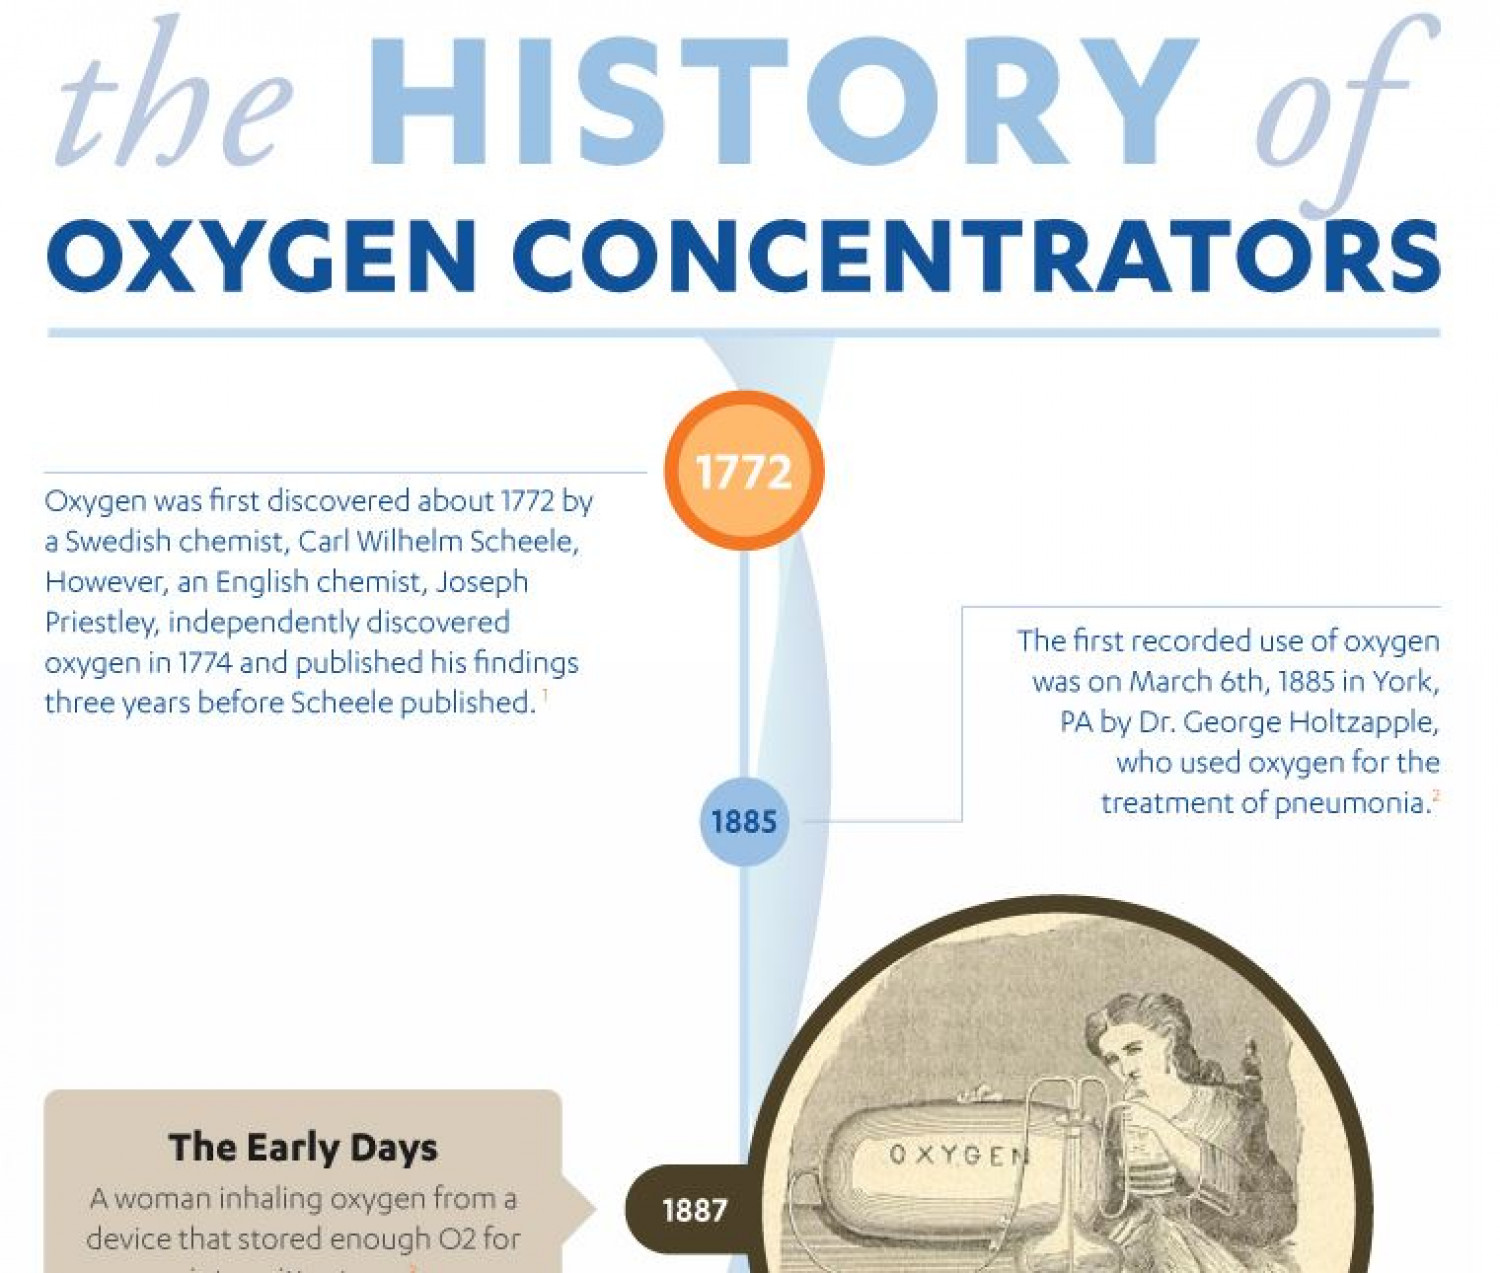 The History of Oxygen Concentrators Infographic